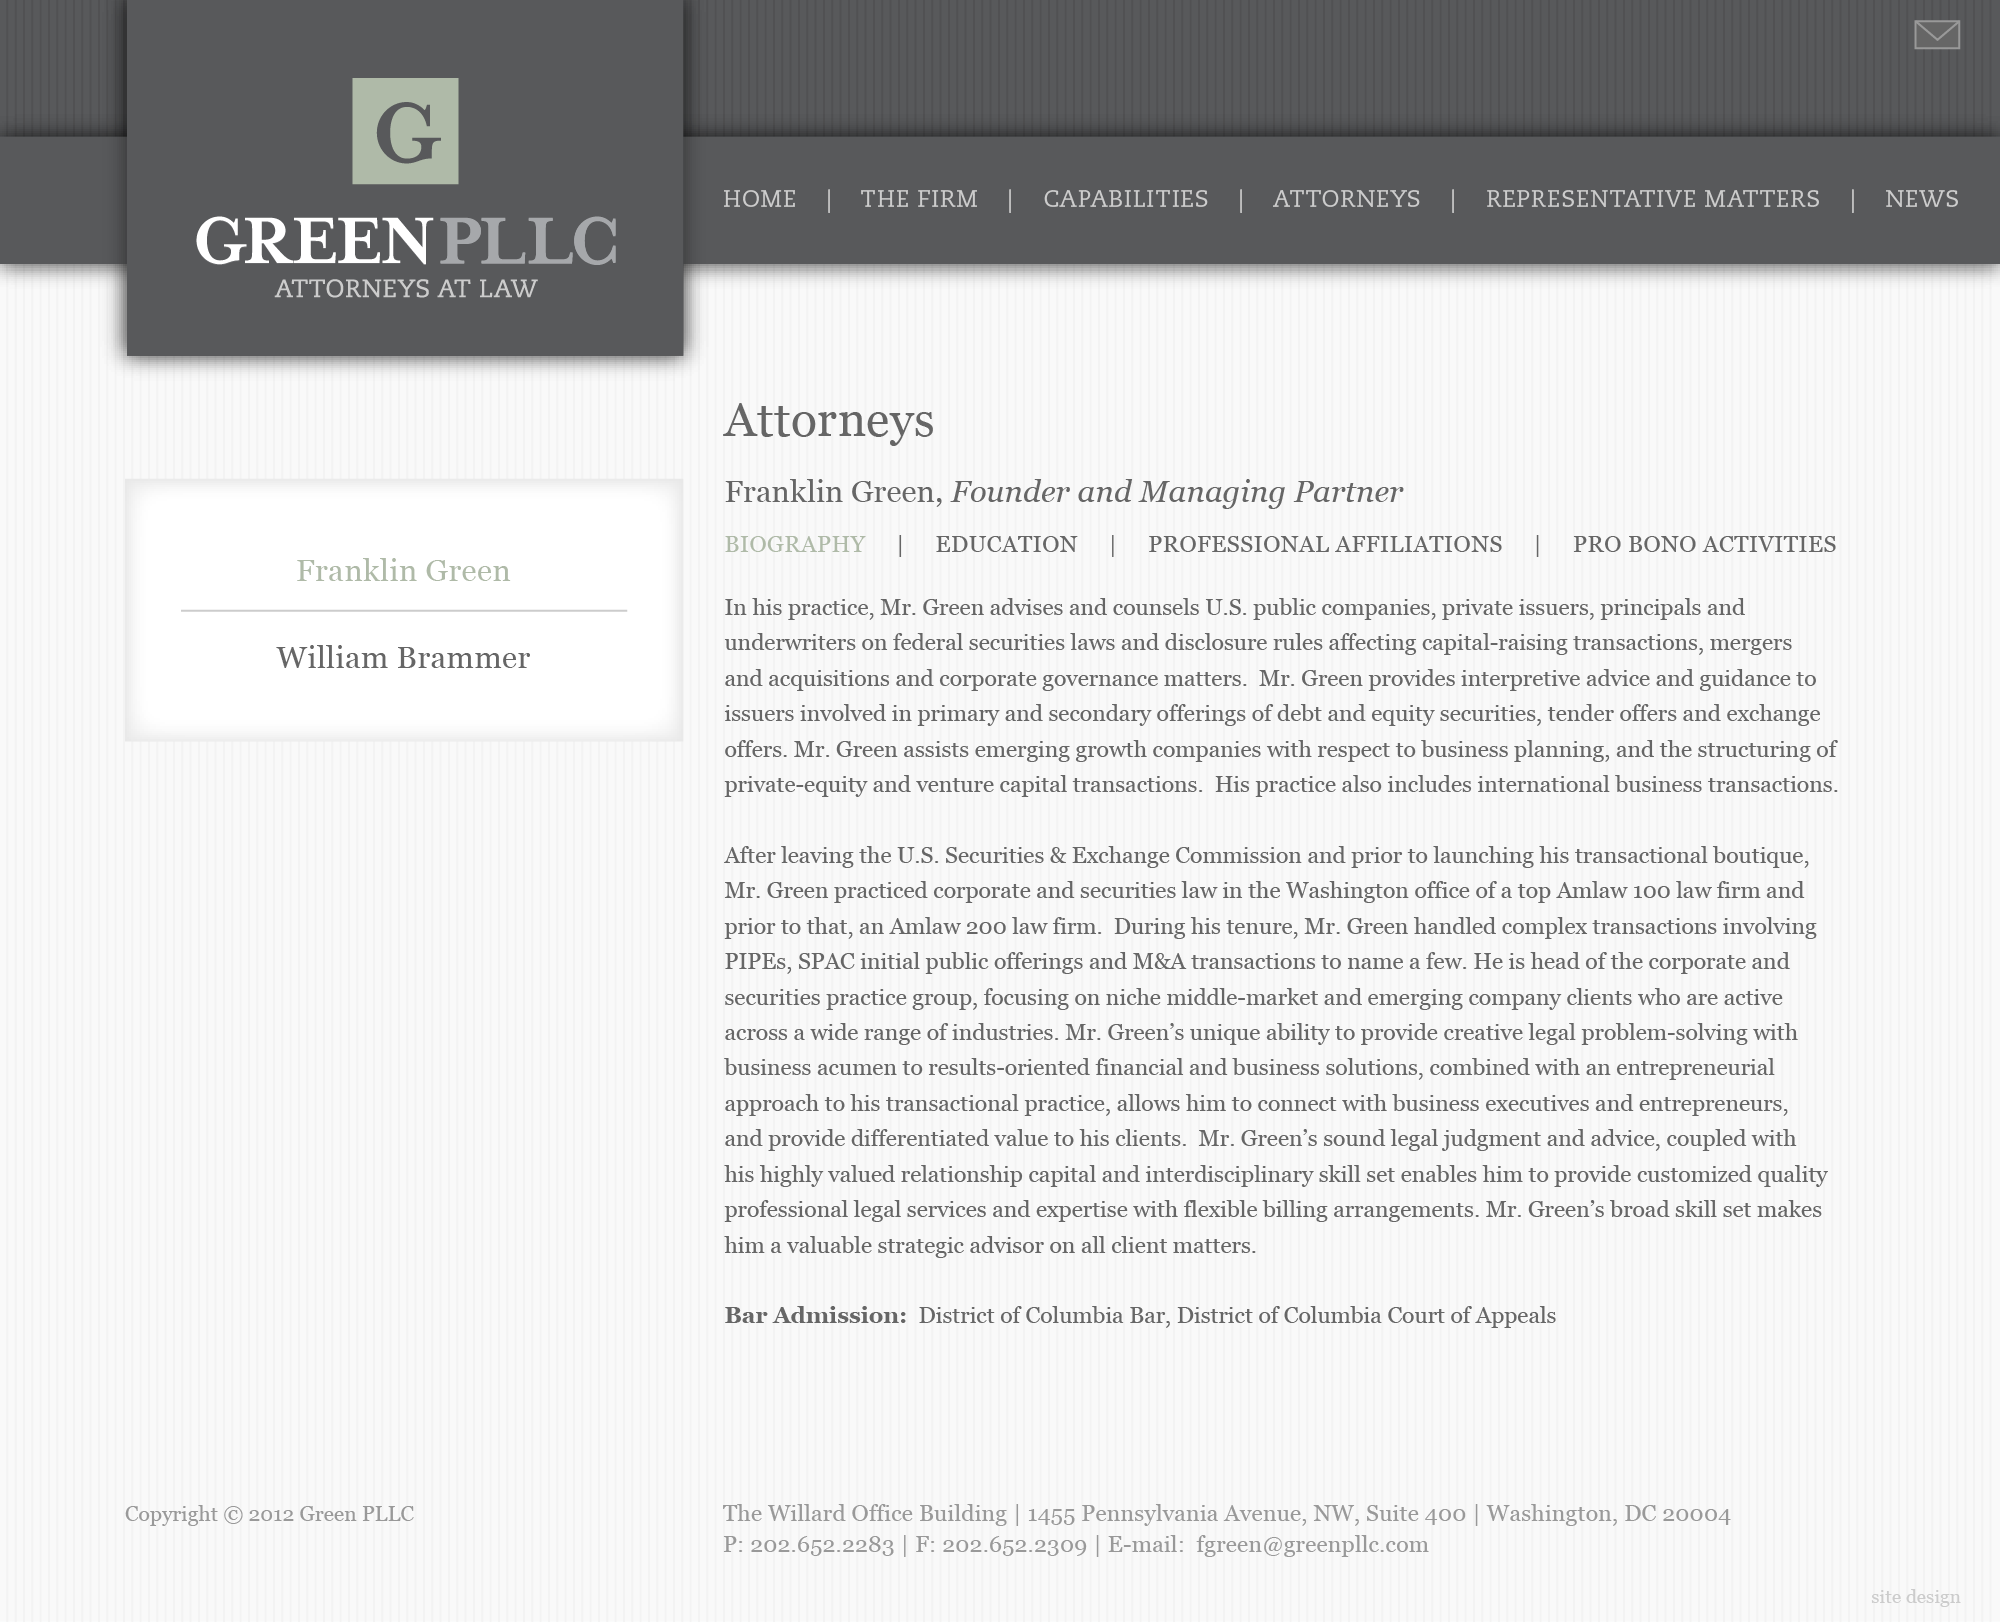 FGREENPLLC_attorneys_pg_green-01.png